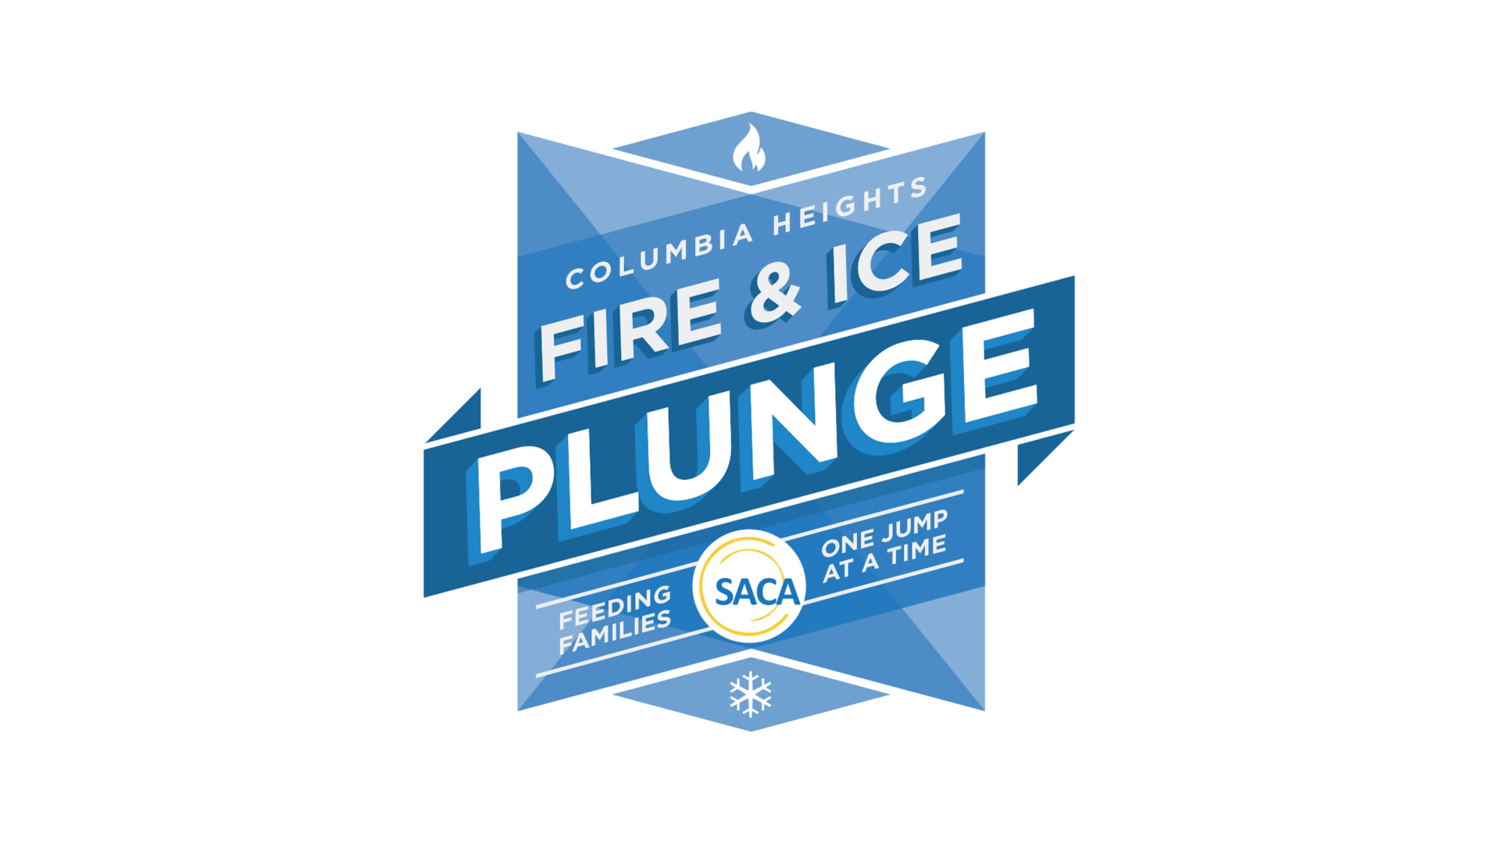 Fire & Ice Plunge